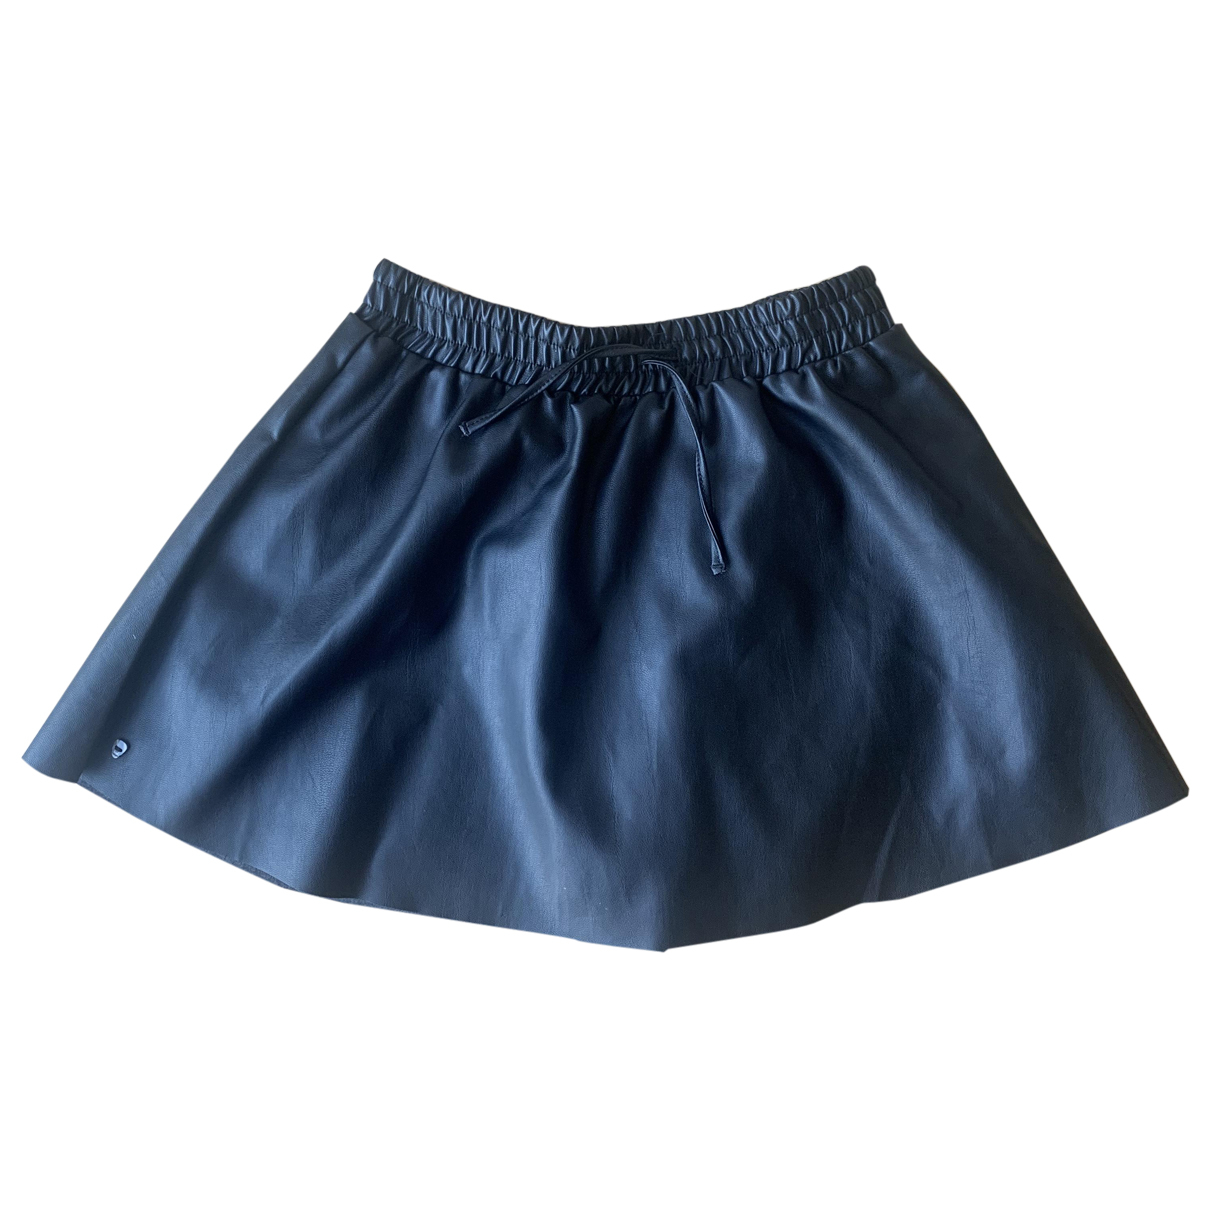 Zadig & Voltaire \N Black skirt for Kids 10 years - up to 142cm FR